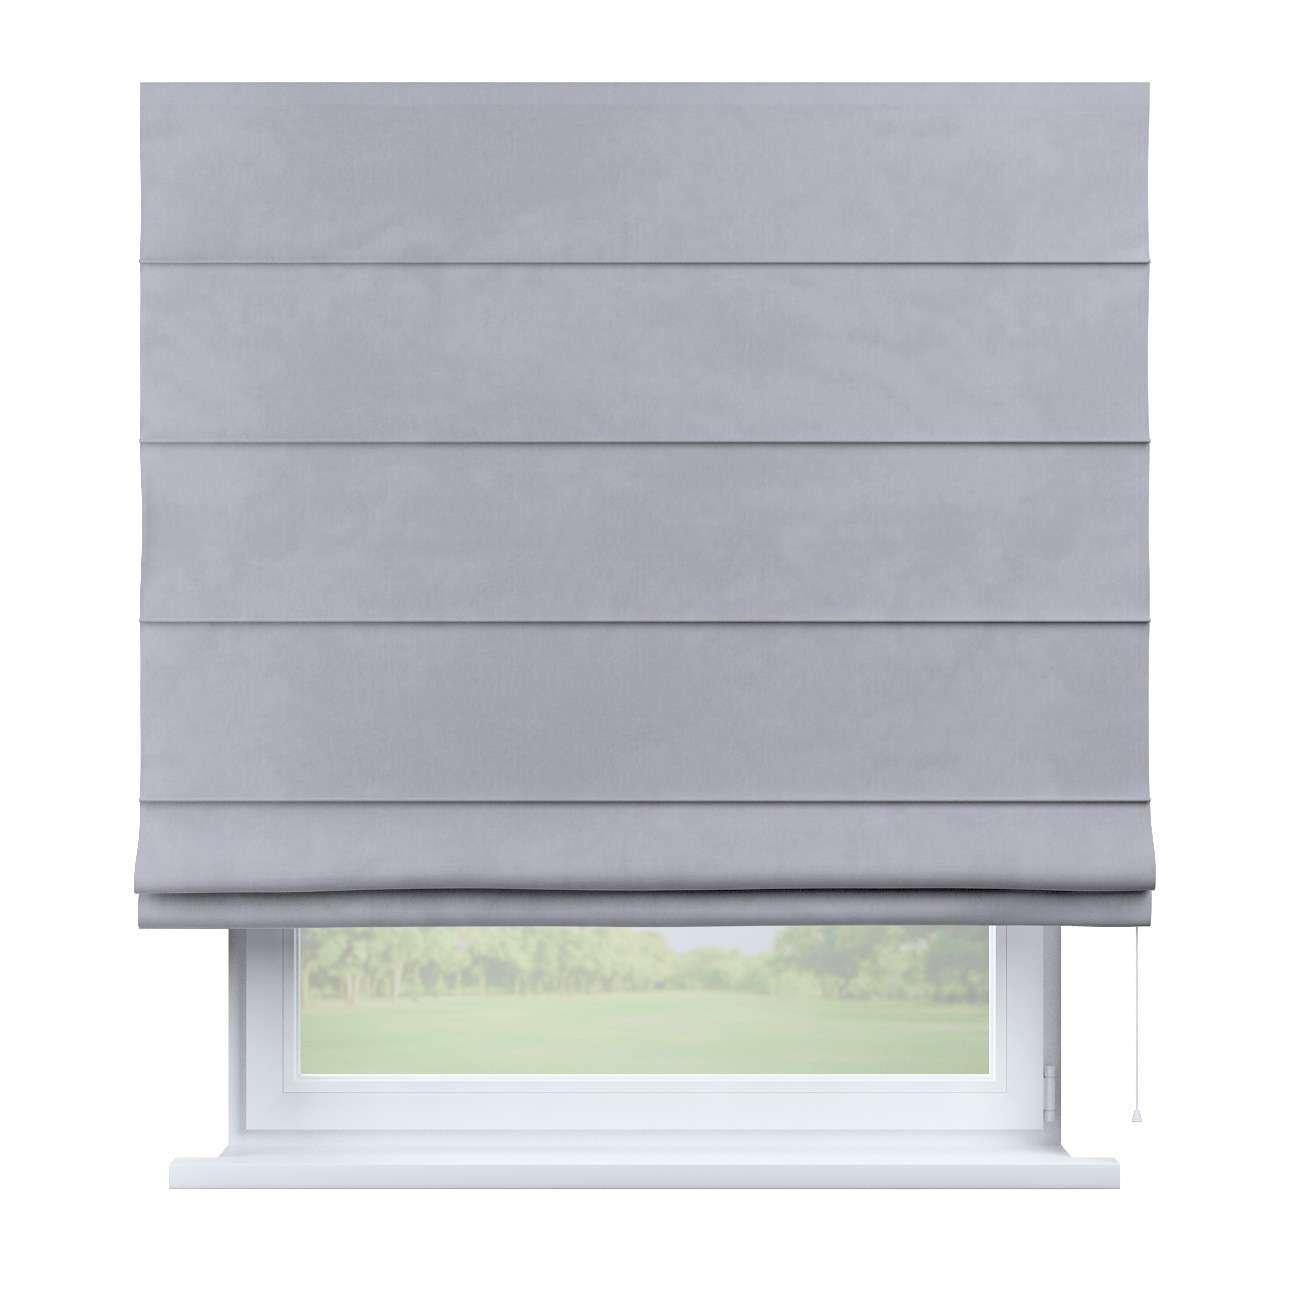 Capri roman blind in collection Velvet, fabric: 704-24